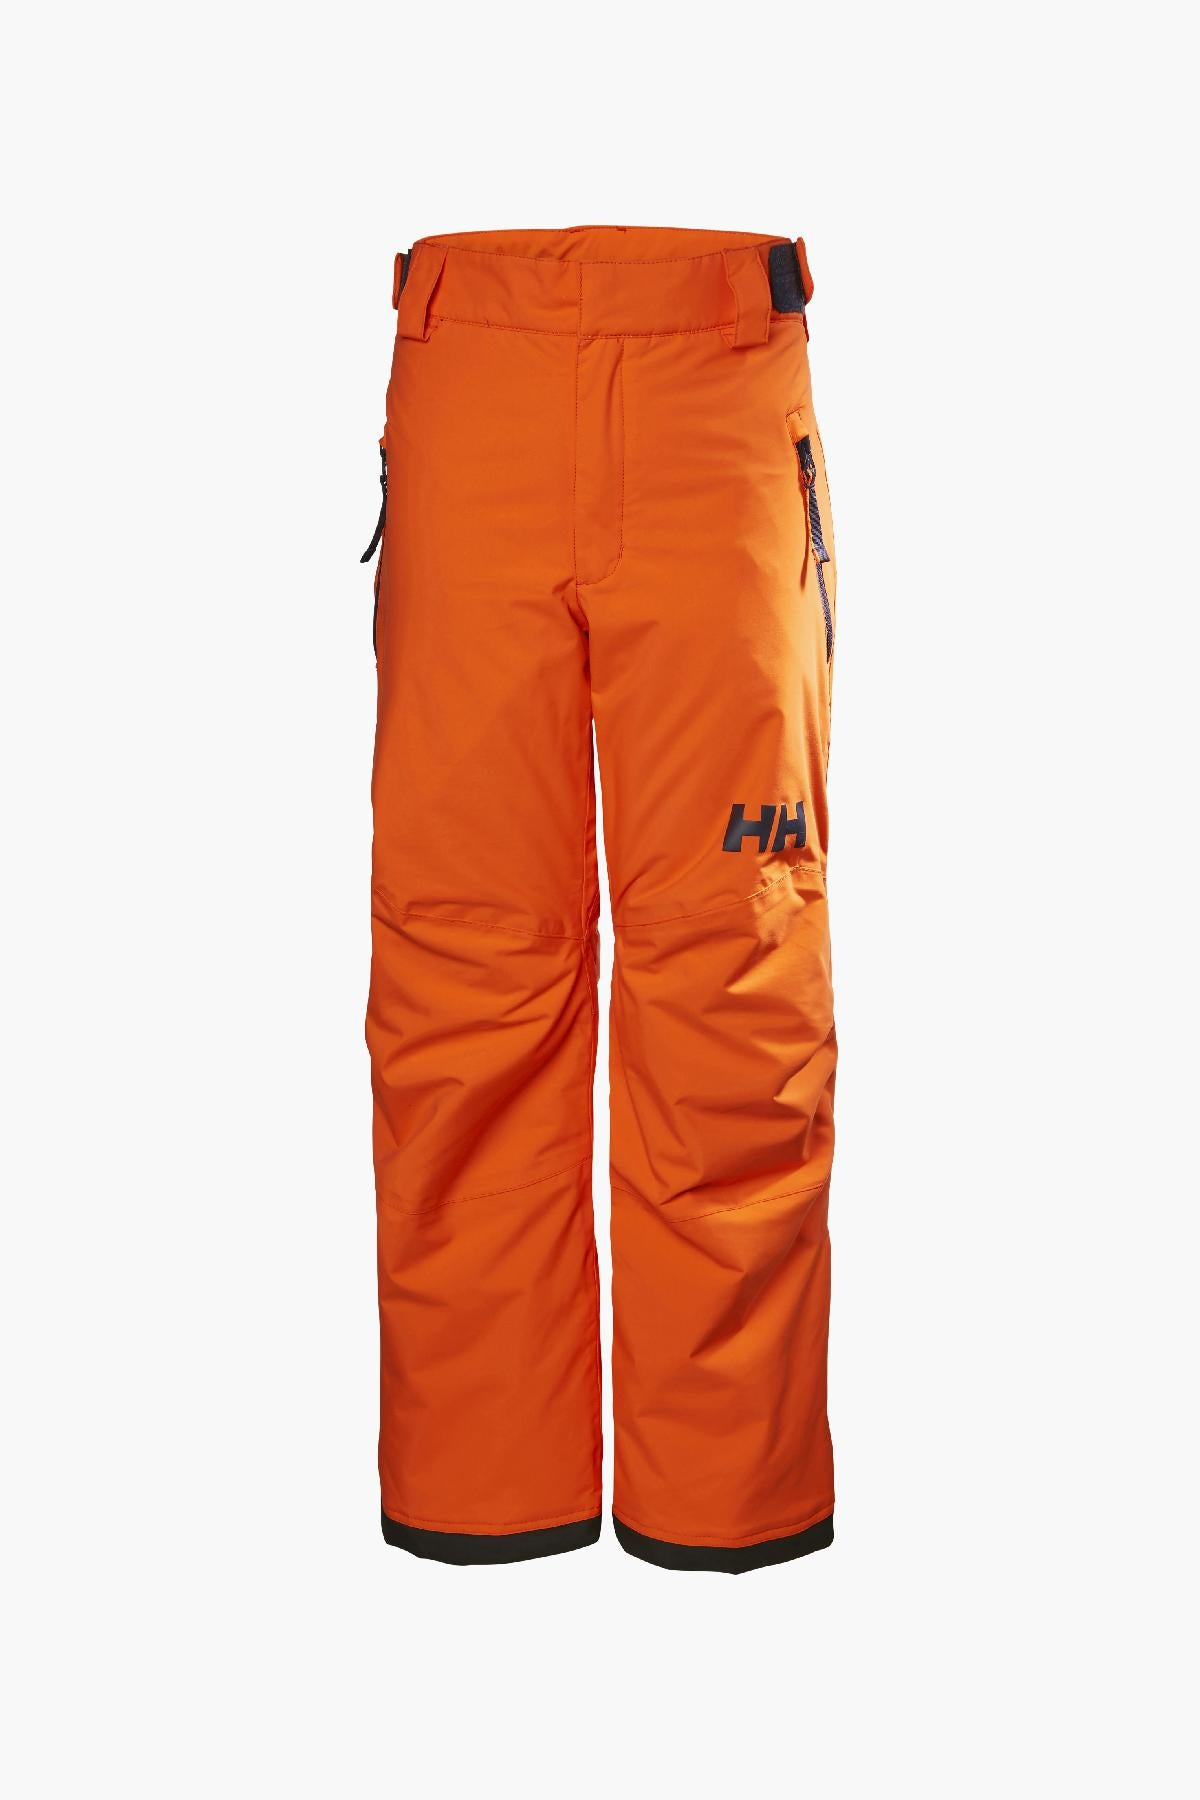 Helly Hansen Kids Snowpant Legendary - Orange